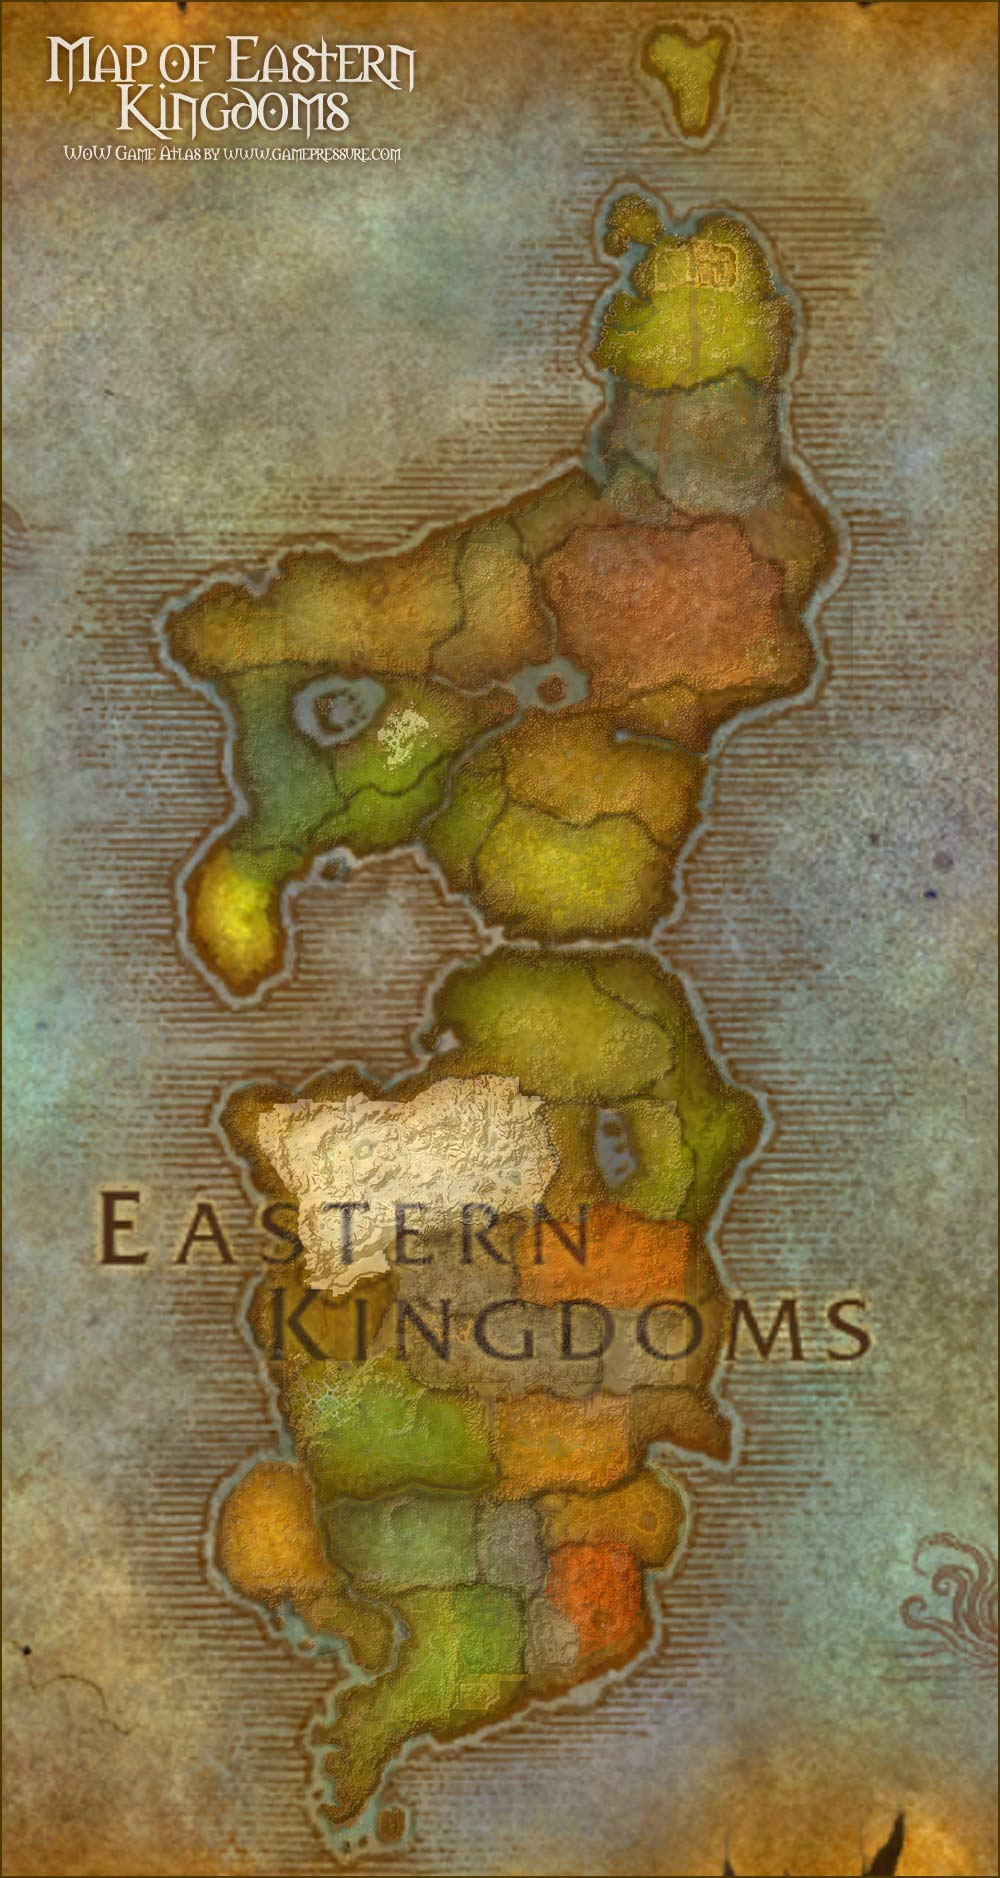 Map of Eastern Kingdoms - World of Warcraft Kingdom S Map on world map, class map, zoology map, dissidia map, domain map, disney's map, gormenghast map, uk great britain map, klan map, geographix map, perception map, cornplanter map, the 100 map, animal map, end times map, bloodline map, protist map, east and southeast asia map, old medieval europe map, kings map,